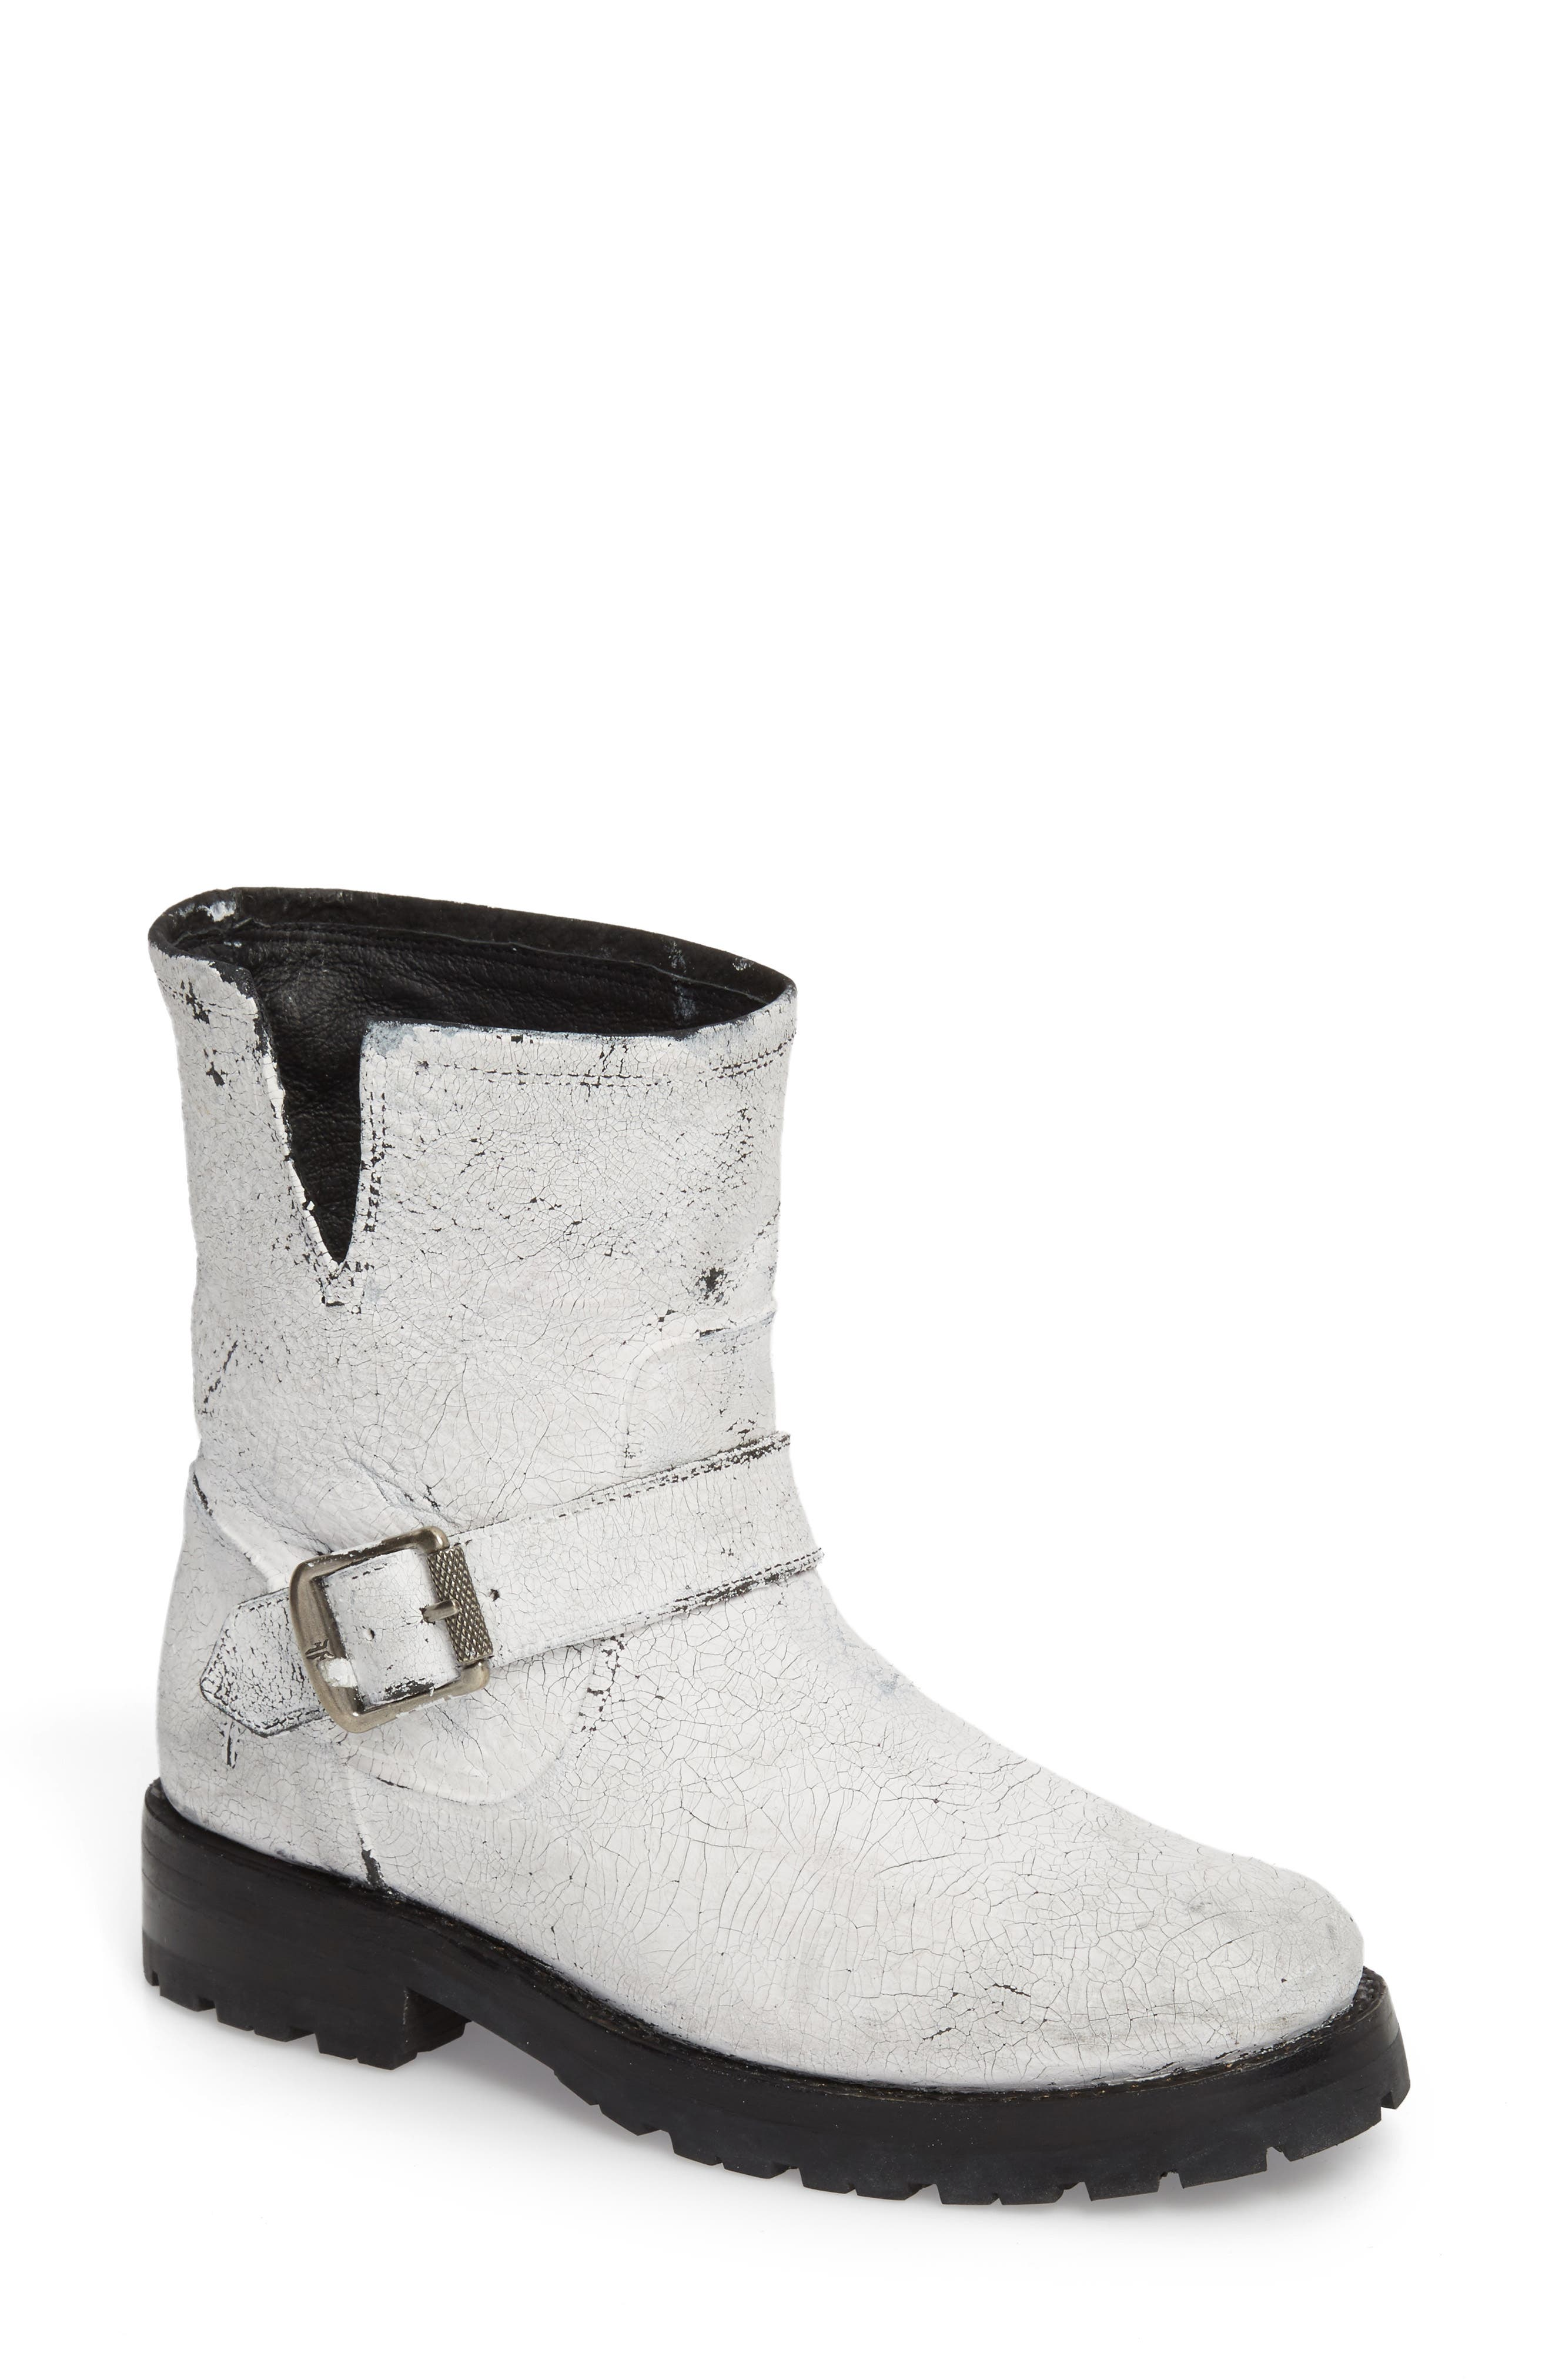 Natalie Engineer Boot,                         Main,                         color, WHITE LEATHER